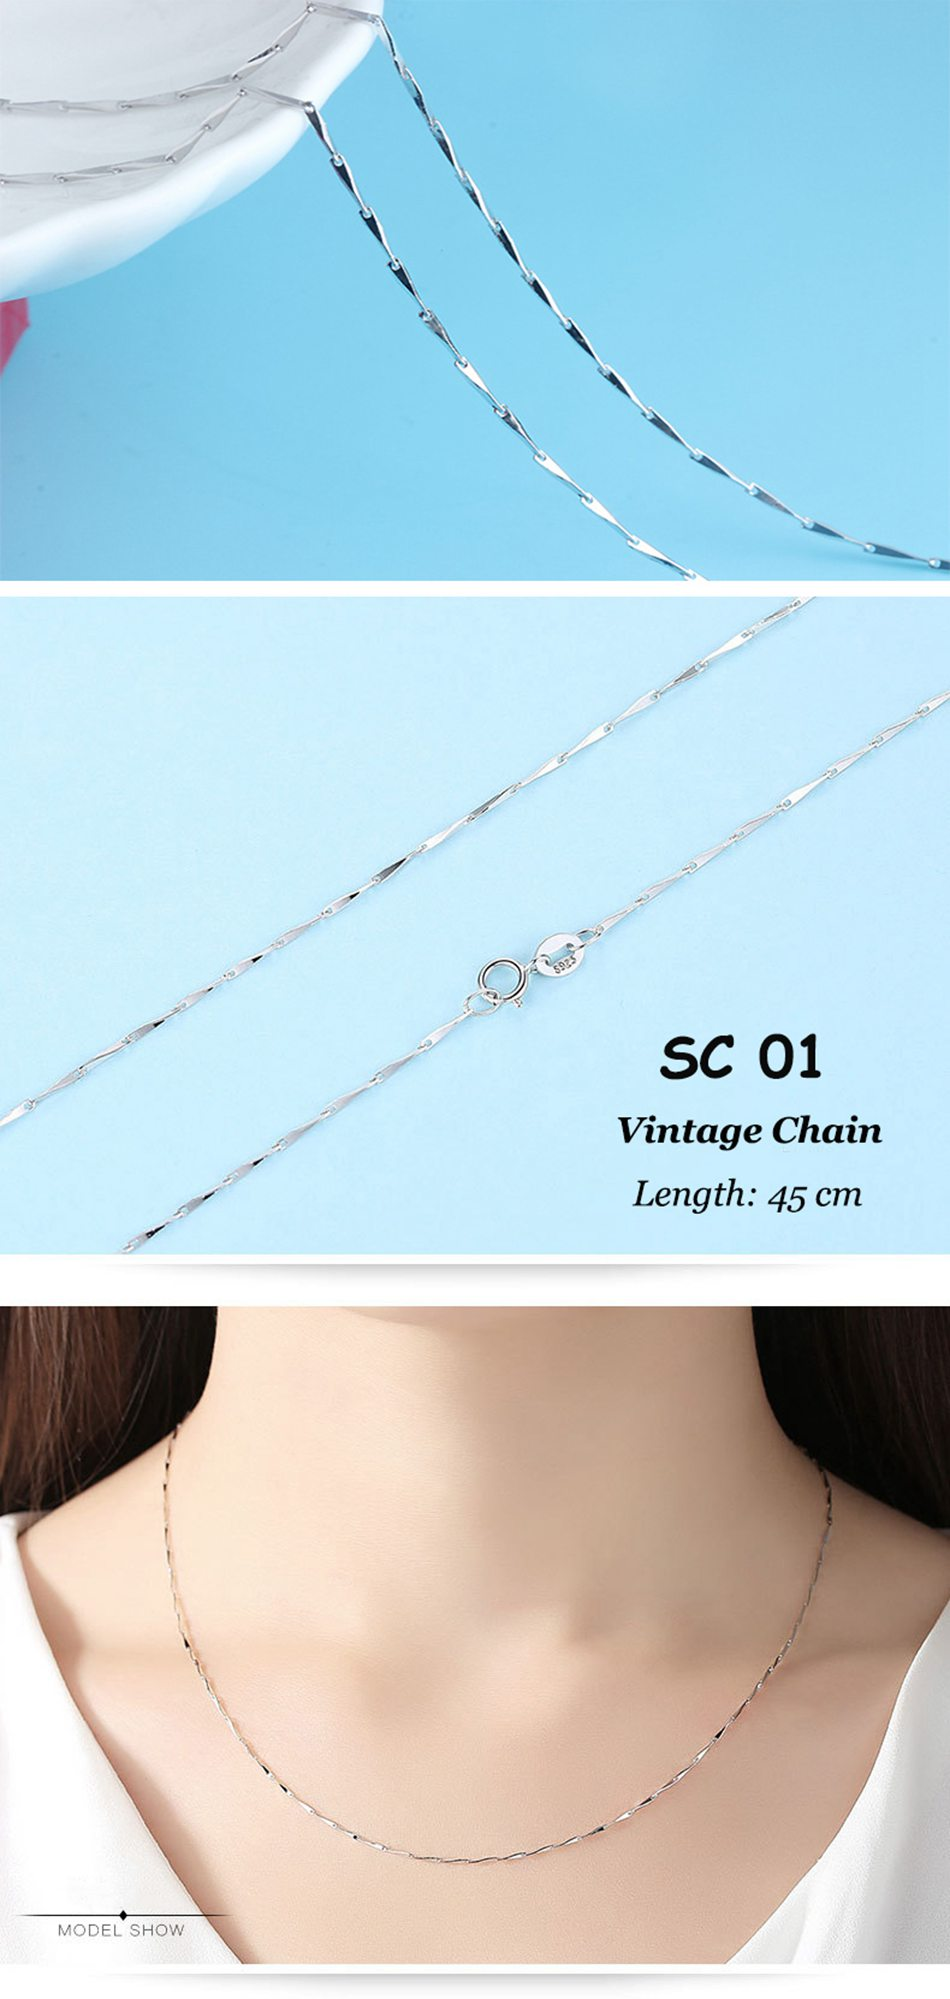 ORSA JEWELS Genuine 925 Sterling Silver Necklace Figaro O-ring Neck Chain Twisted Snake Bar Singapore Box Chain Necklace Women 1